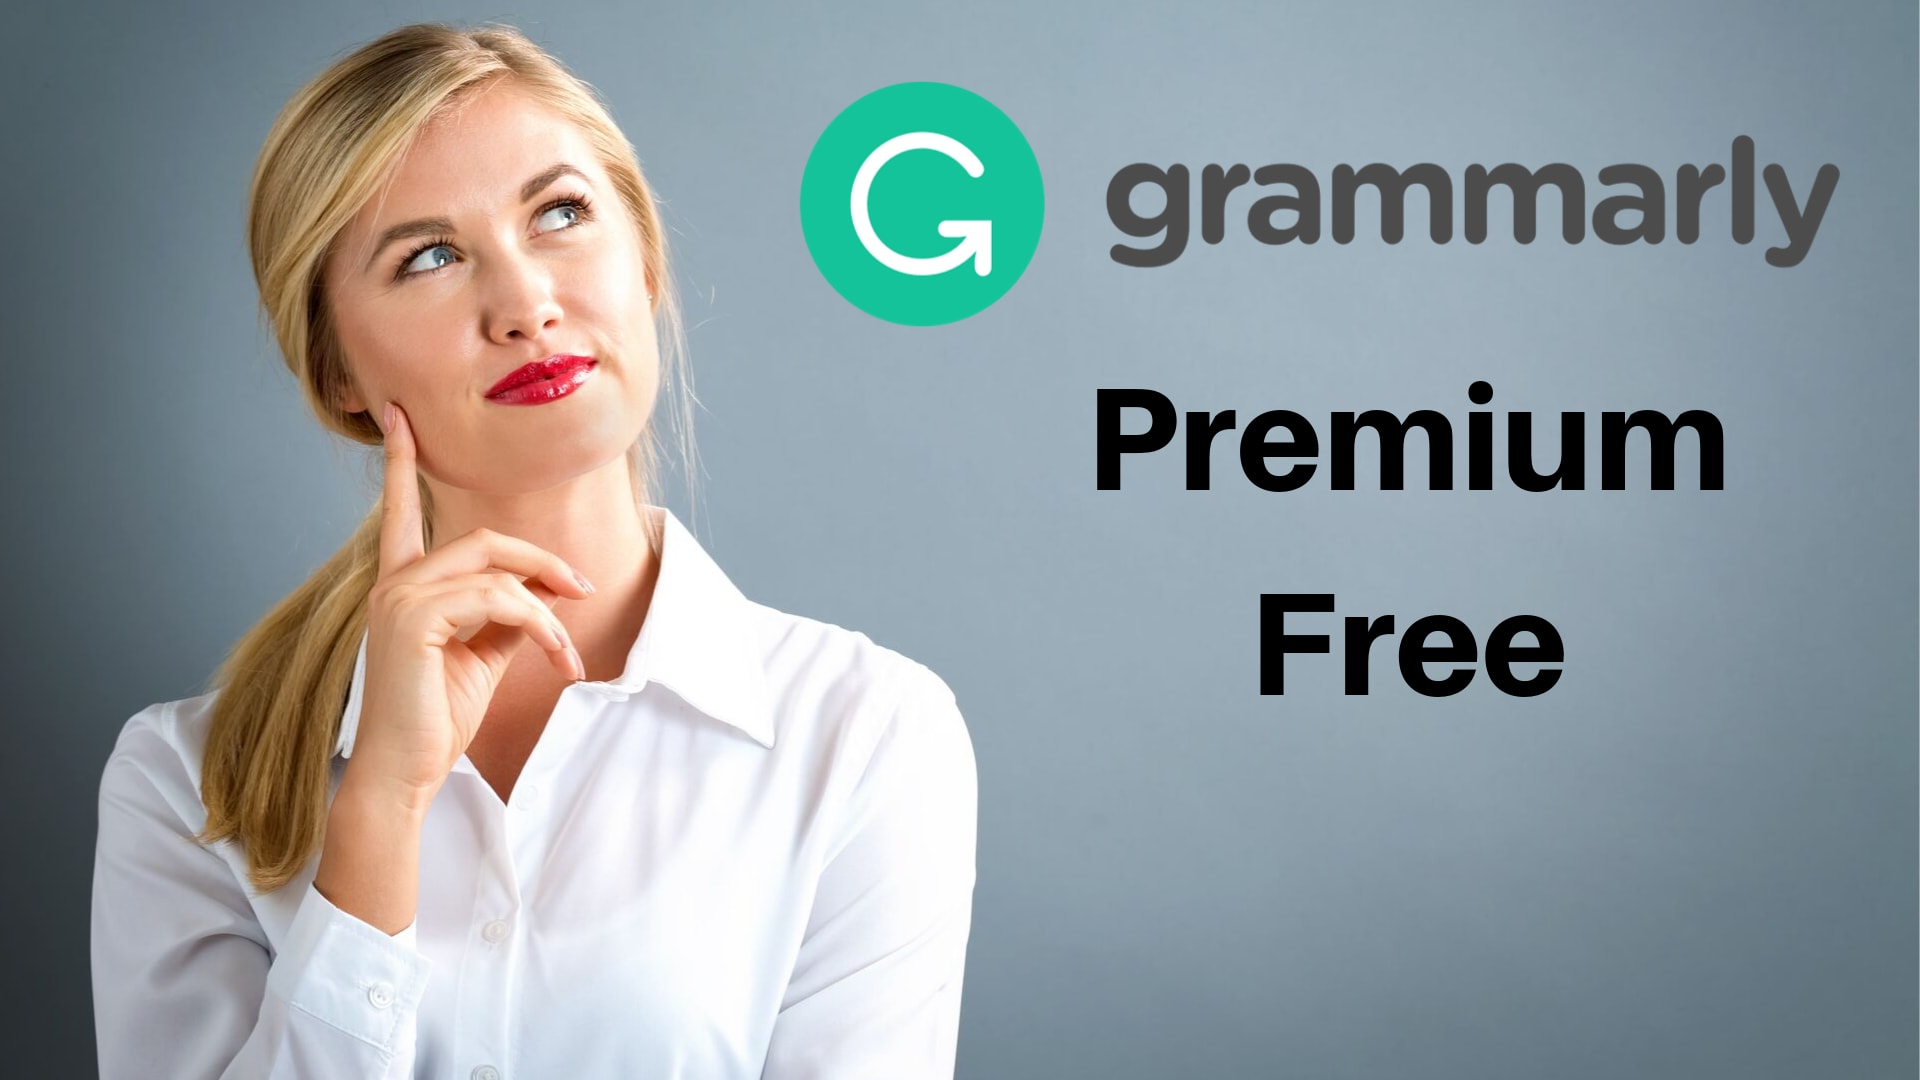 Grammarly Premium Free 100% Working Method 2020